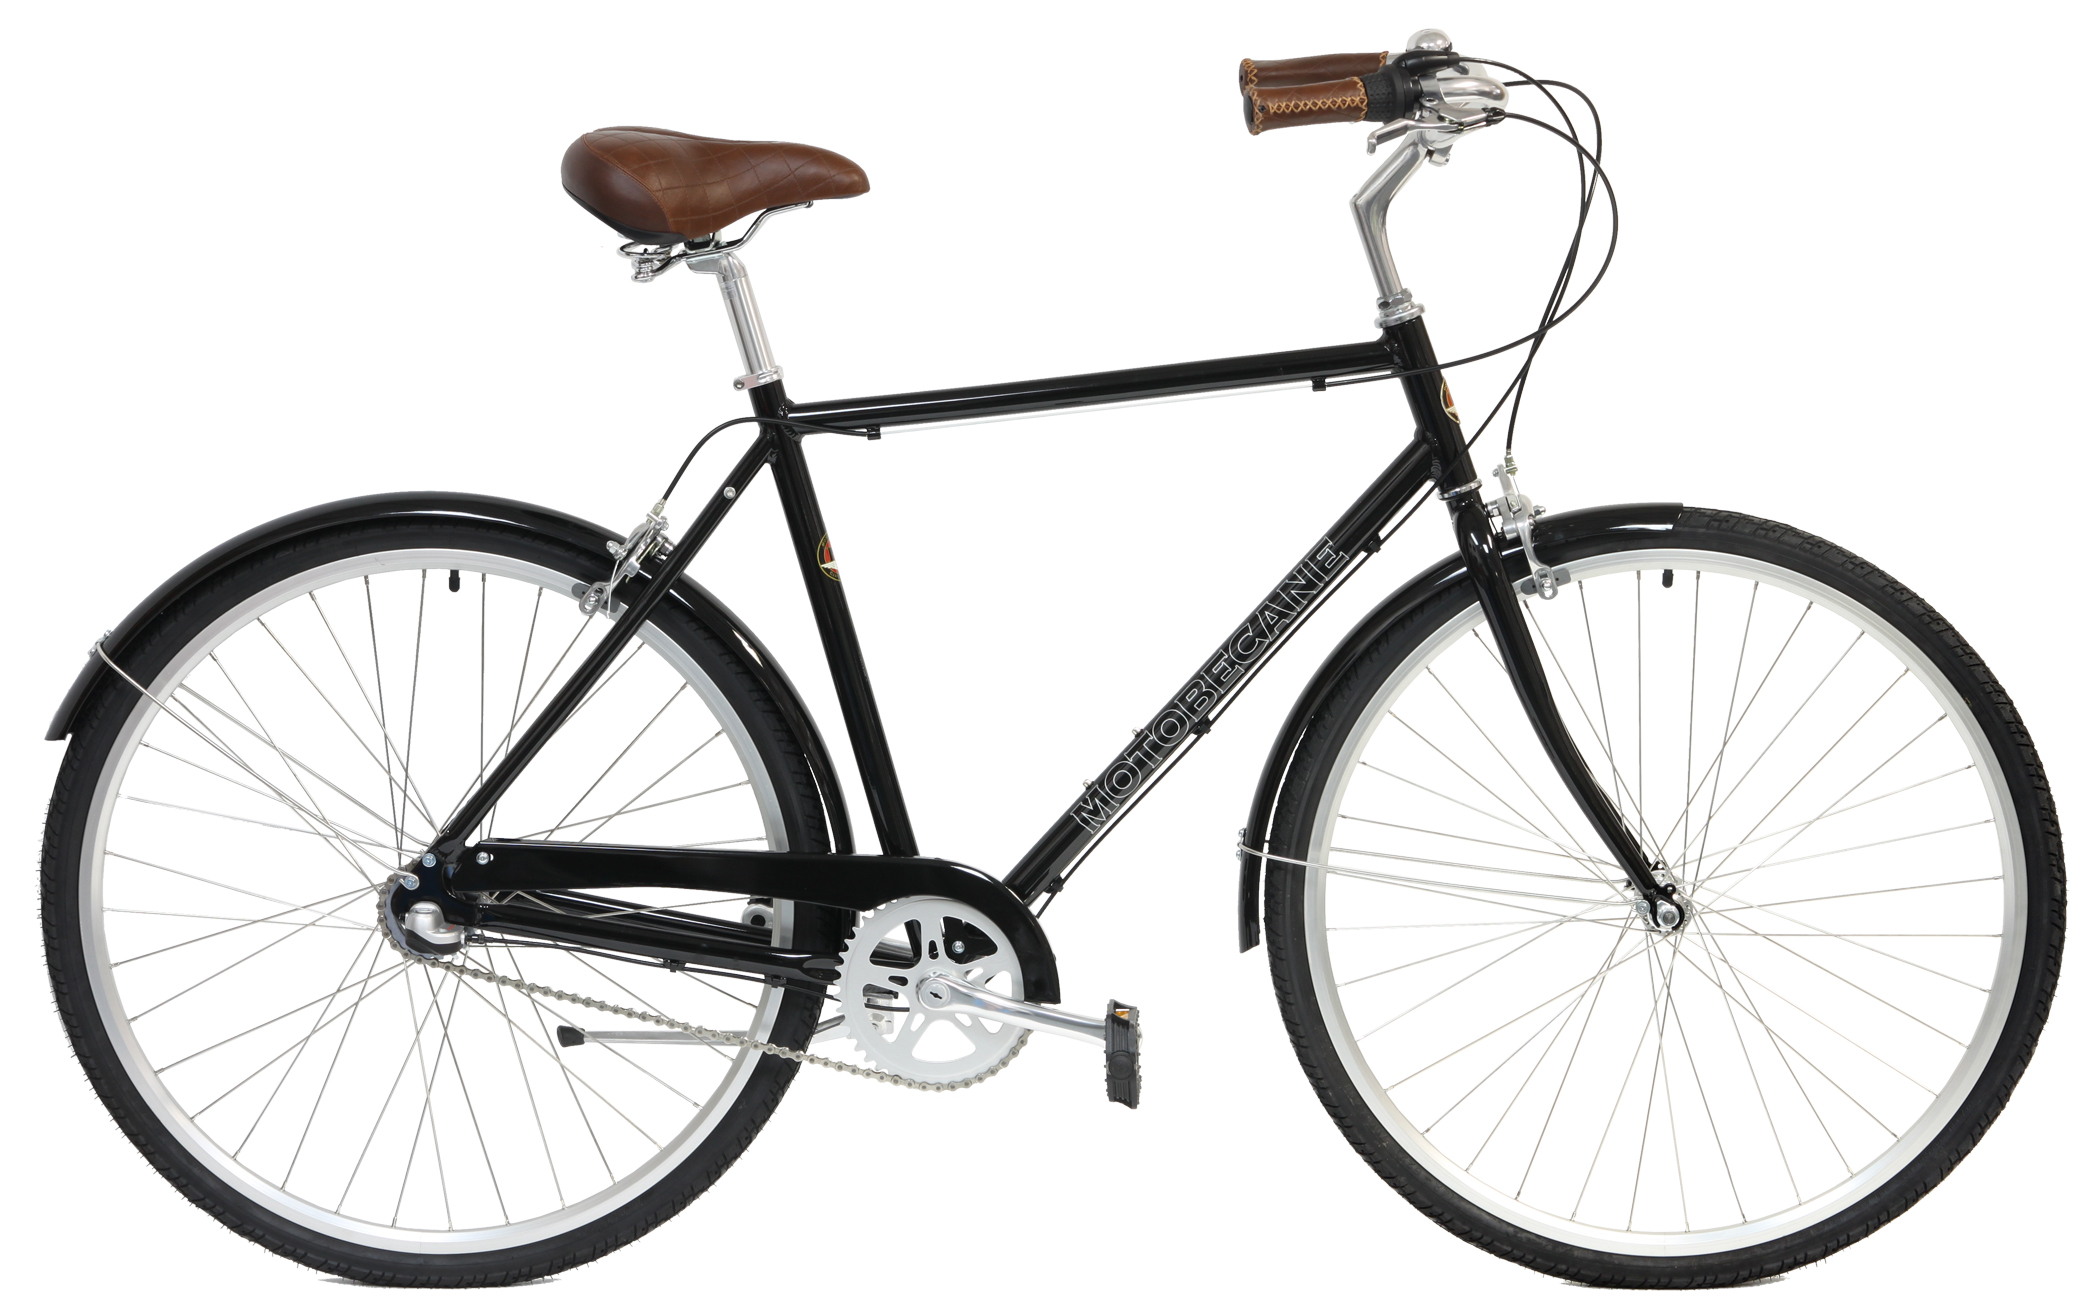 City Bikes Save up to 60% off new Motobecane Bistro